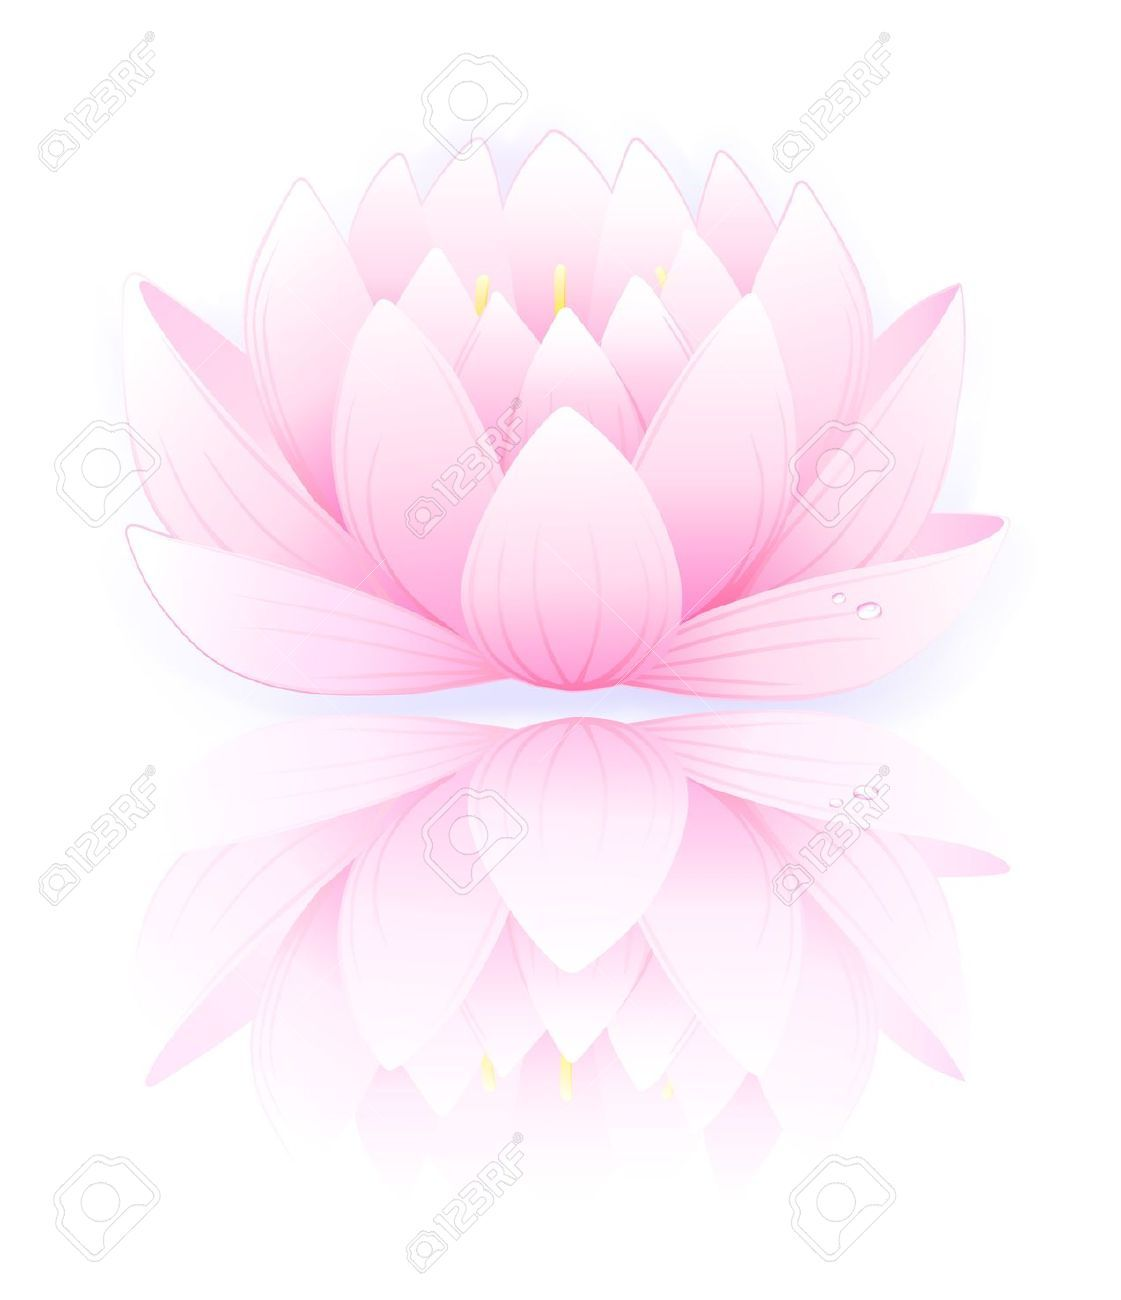 White Lotus Flower Background - Google Search